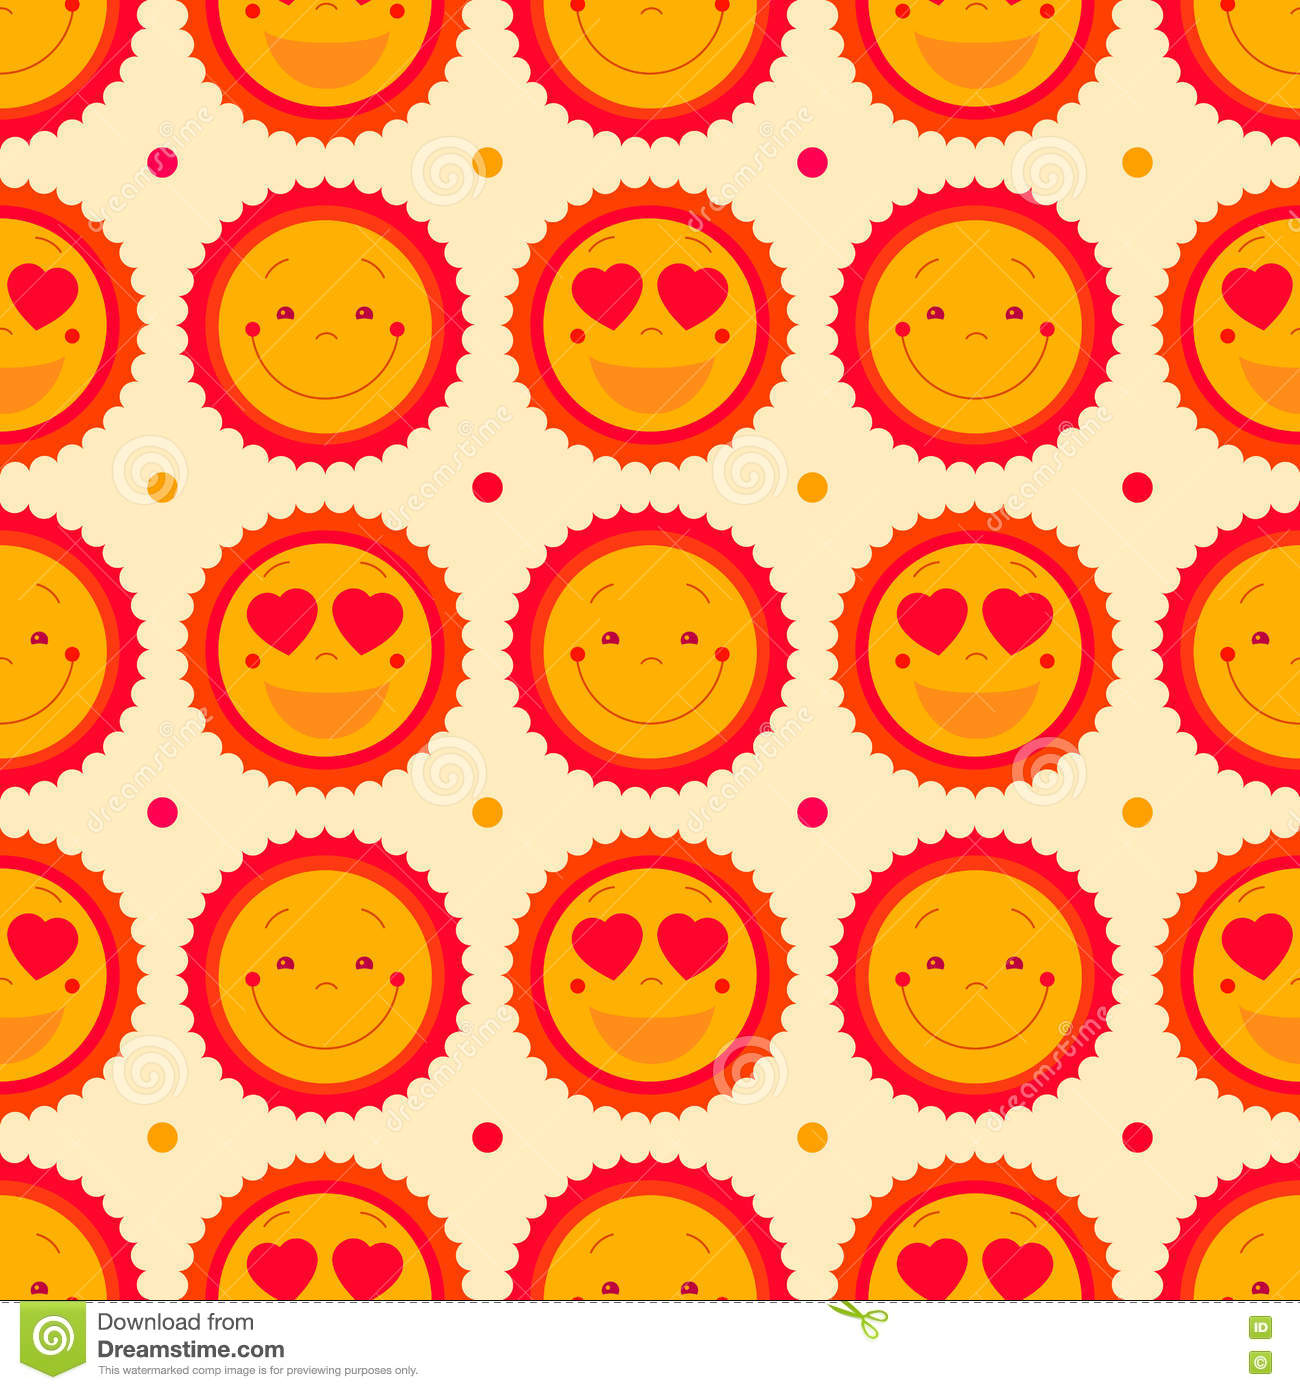 Vector happy emoticons seamless pattern background with suns. Summer fun background, repeating pattern design. Cute sun icons set